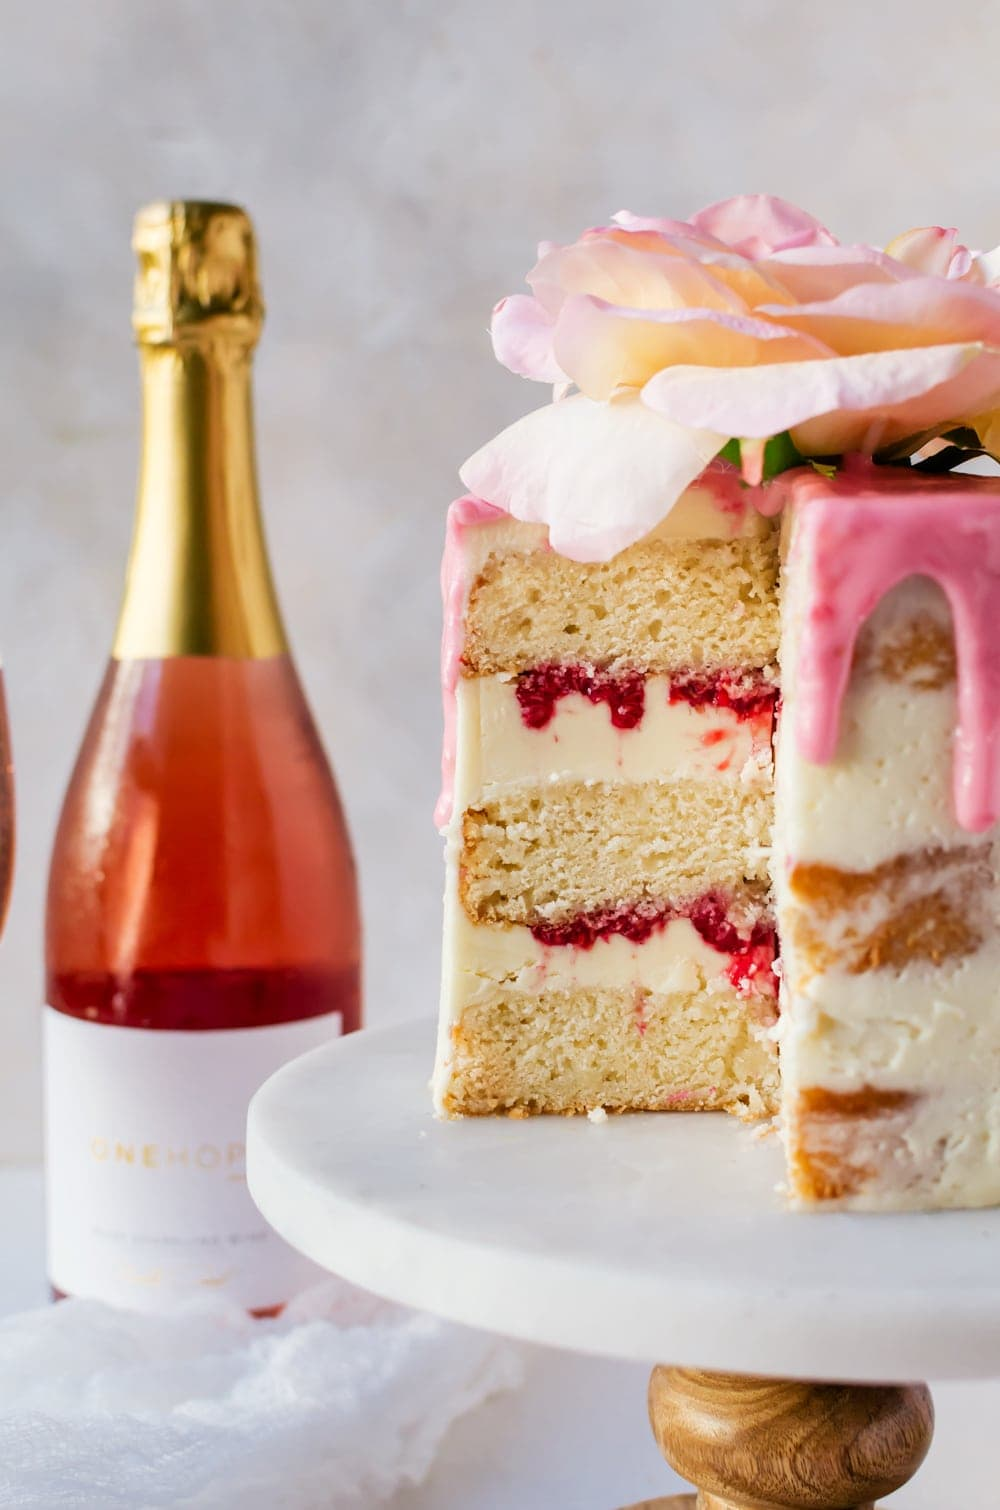 Celebrate every special moment in your life with this raspbery rose cake made with sparkling rose wine